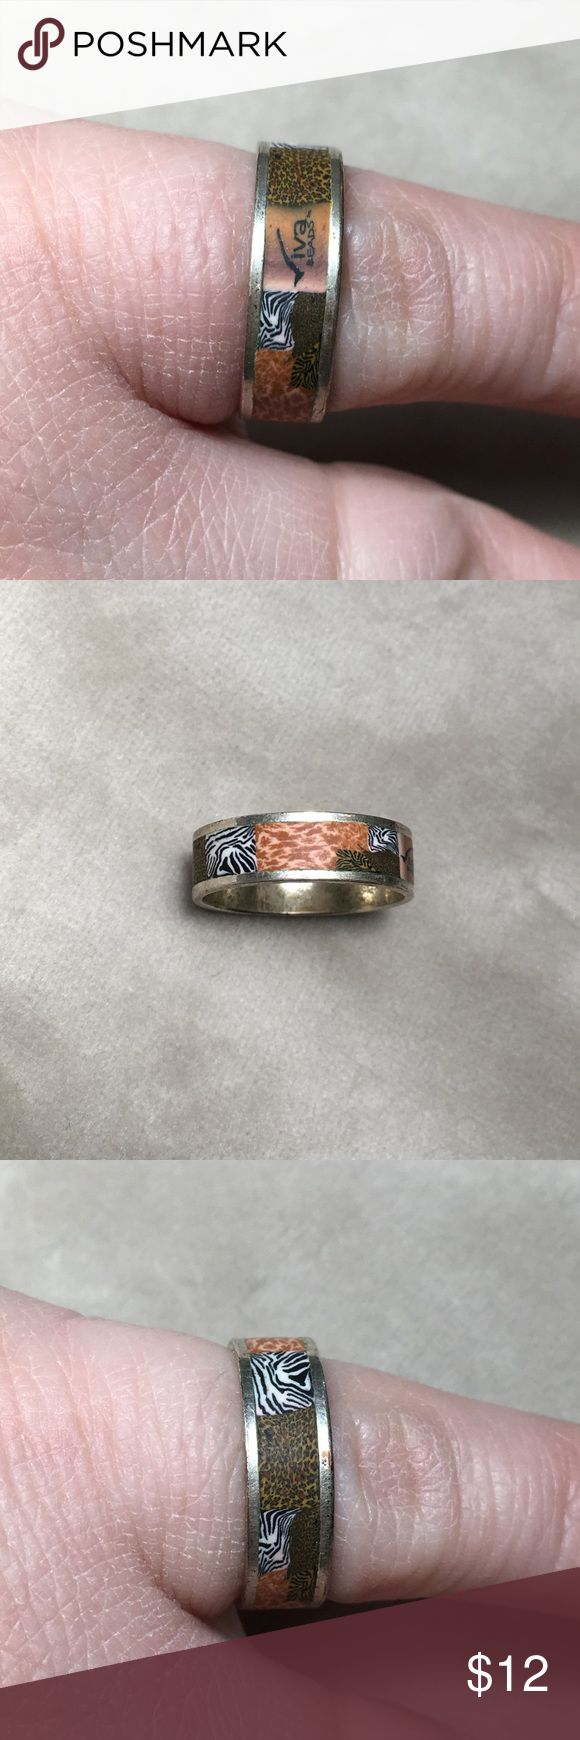 Viva Beads Animal Print Safari Ring size 7 Funky little animal print ring. Size 7. From Viva Beads. Pre-owned with a little tarnishing on the inside. Viva Beads Jewelry Rings